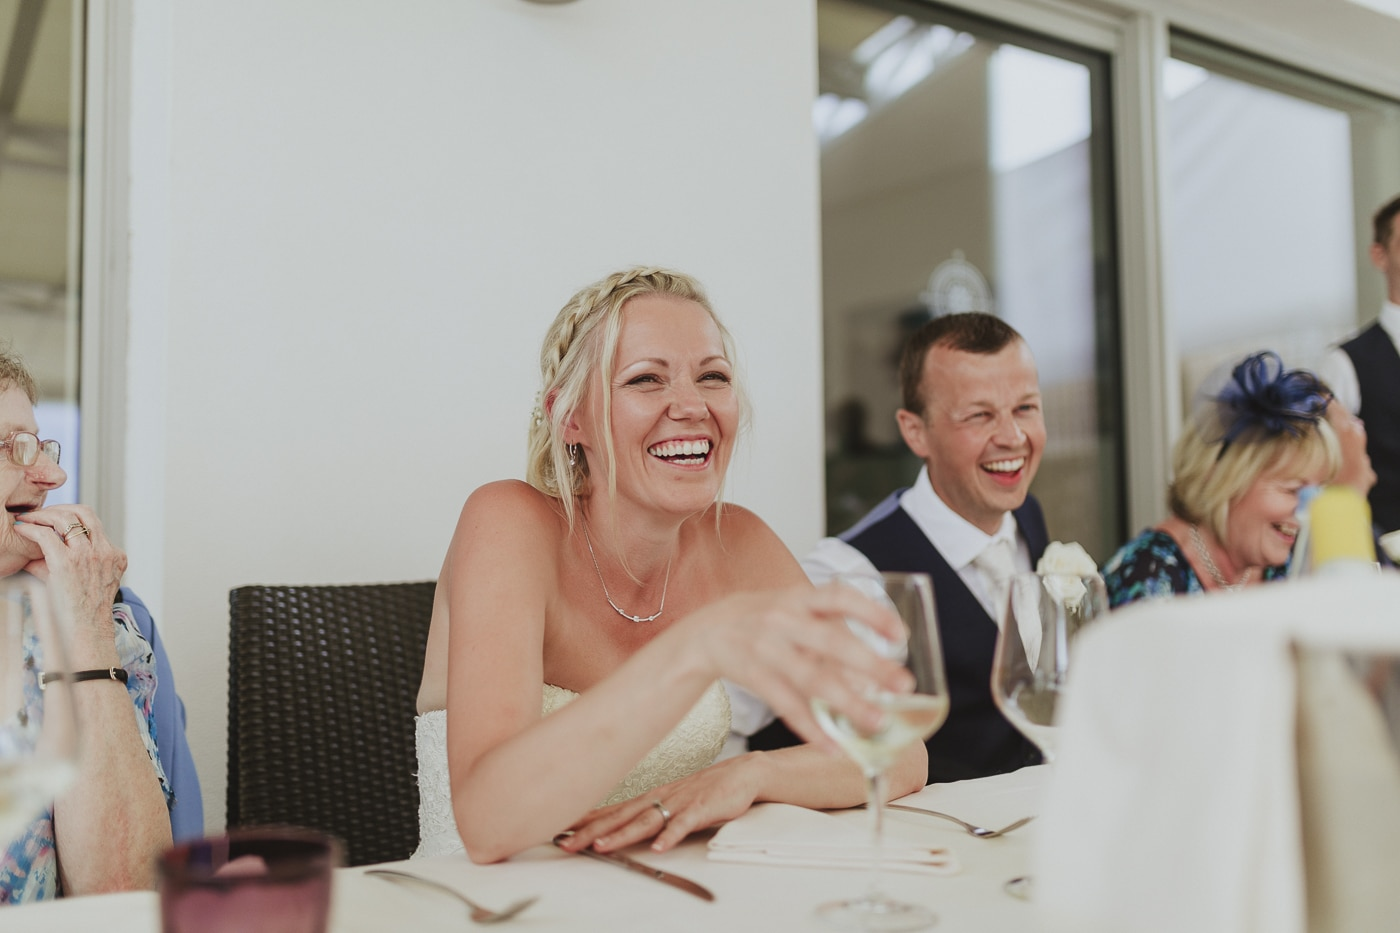 Bride with braids in her hair and a glass of wine in her hand laughs along with husband and guests by Joshua Wyborn